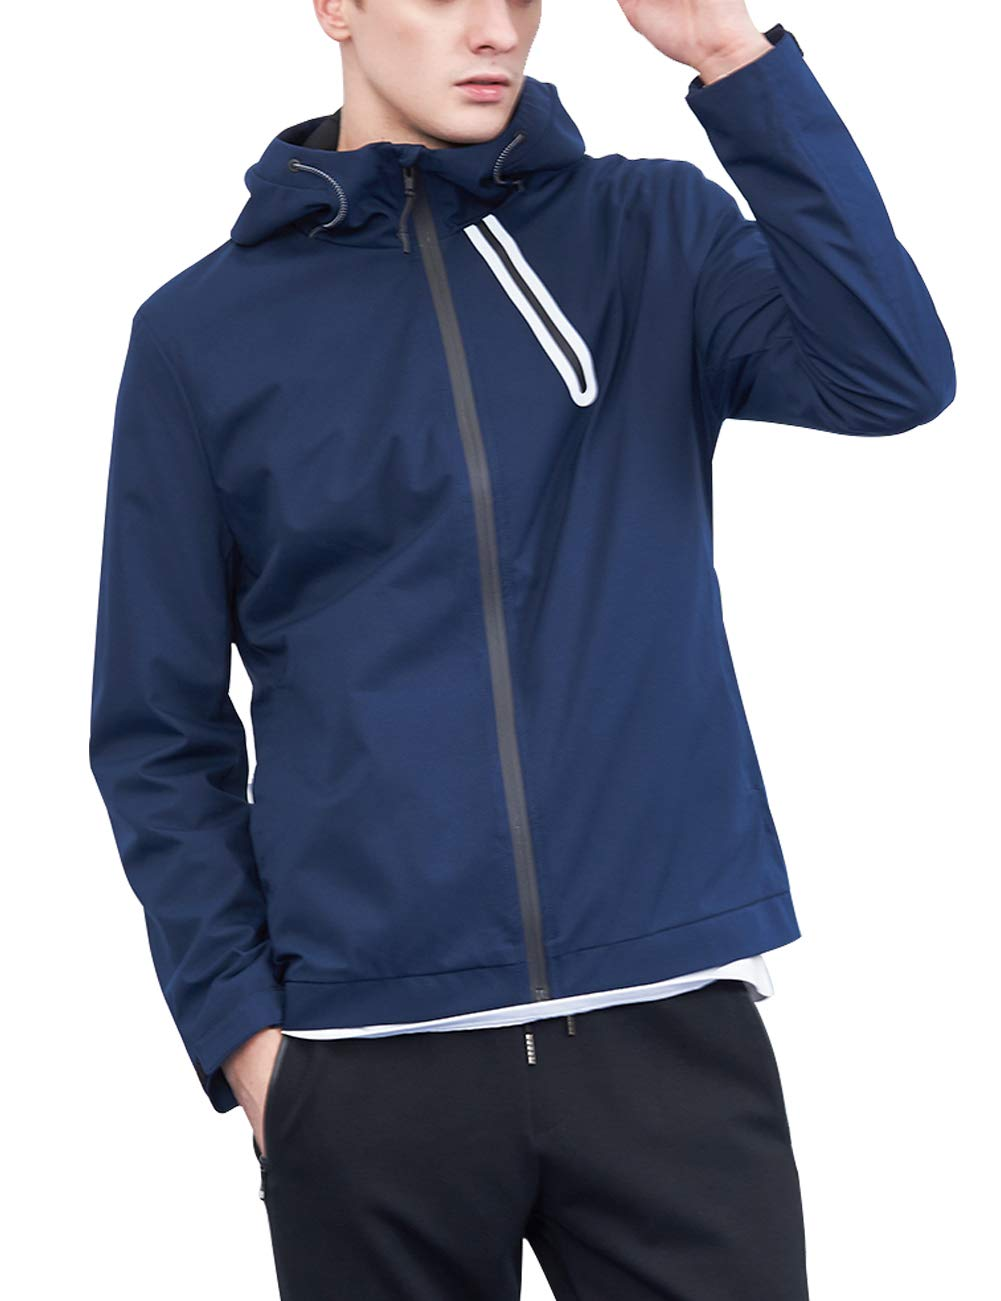 Aoli Ray Men's Hooded Jacket Full-Zip Lightweight Breathable Quick Dry for Sports Running Travelling (Hooded Jacket Navy Blue, S)